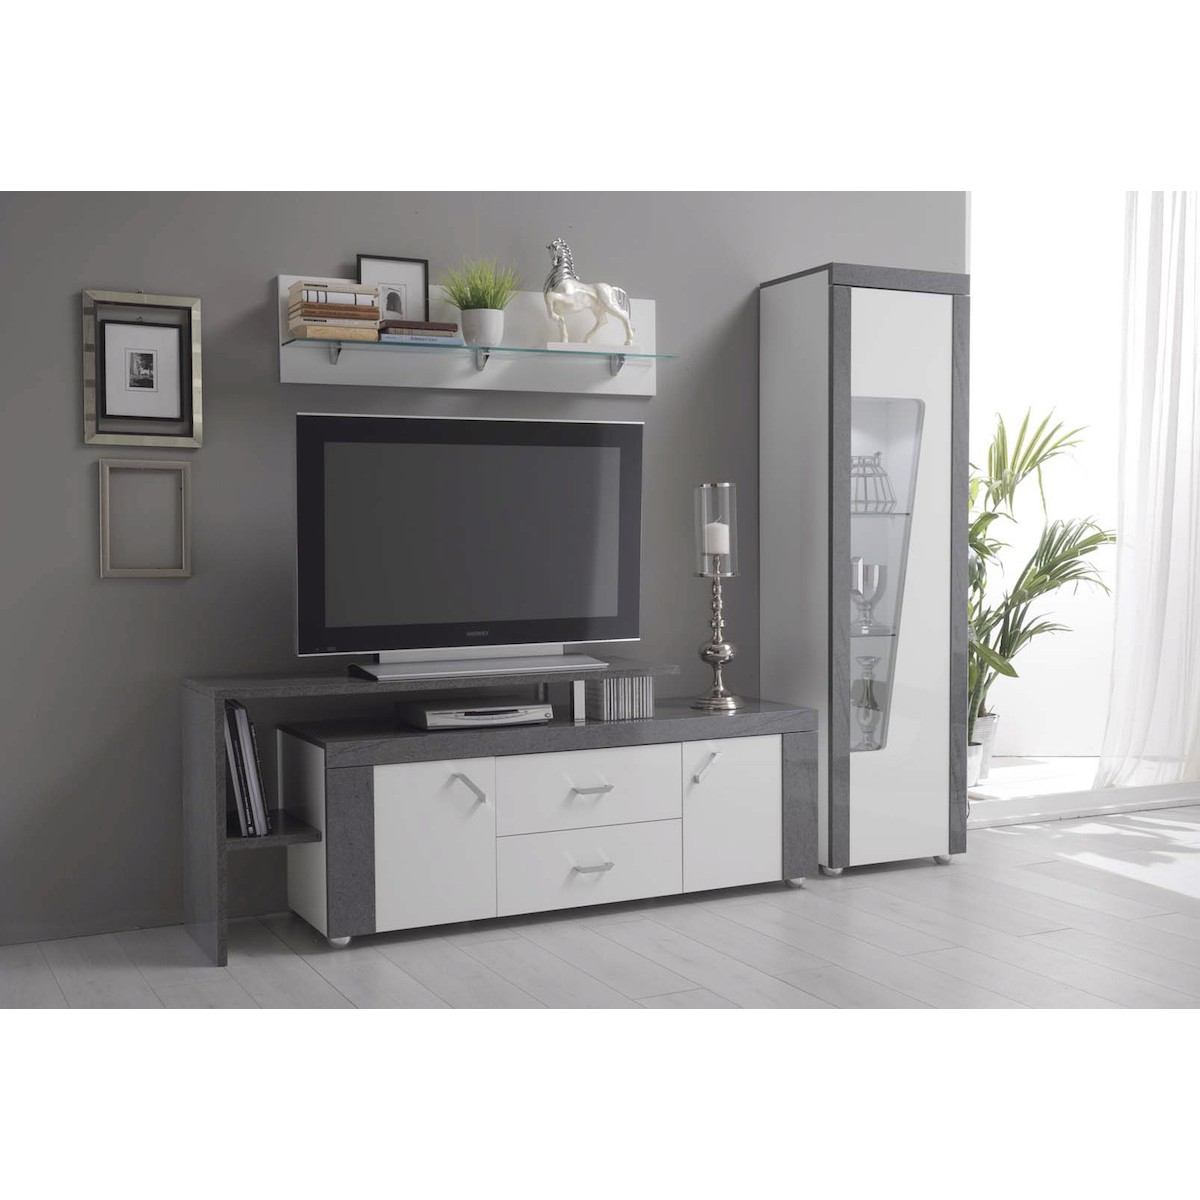 altobuy luna meuble tv avec plateau neuf eur 709 99 picclick fr. Black Bedroom Furniture Sets. Home Design Ideas